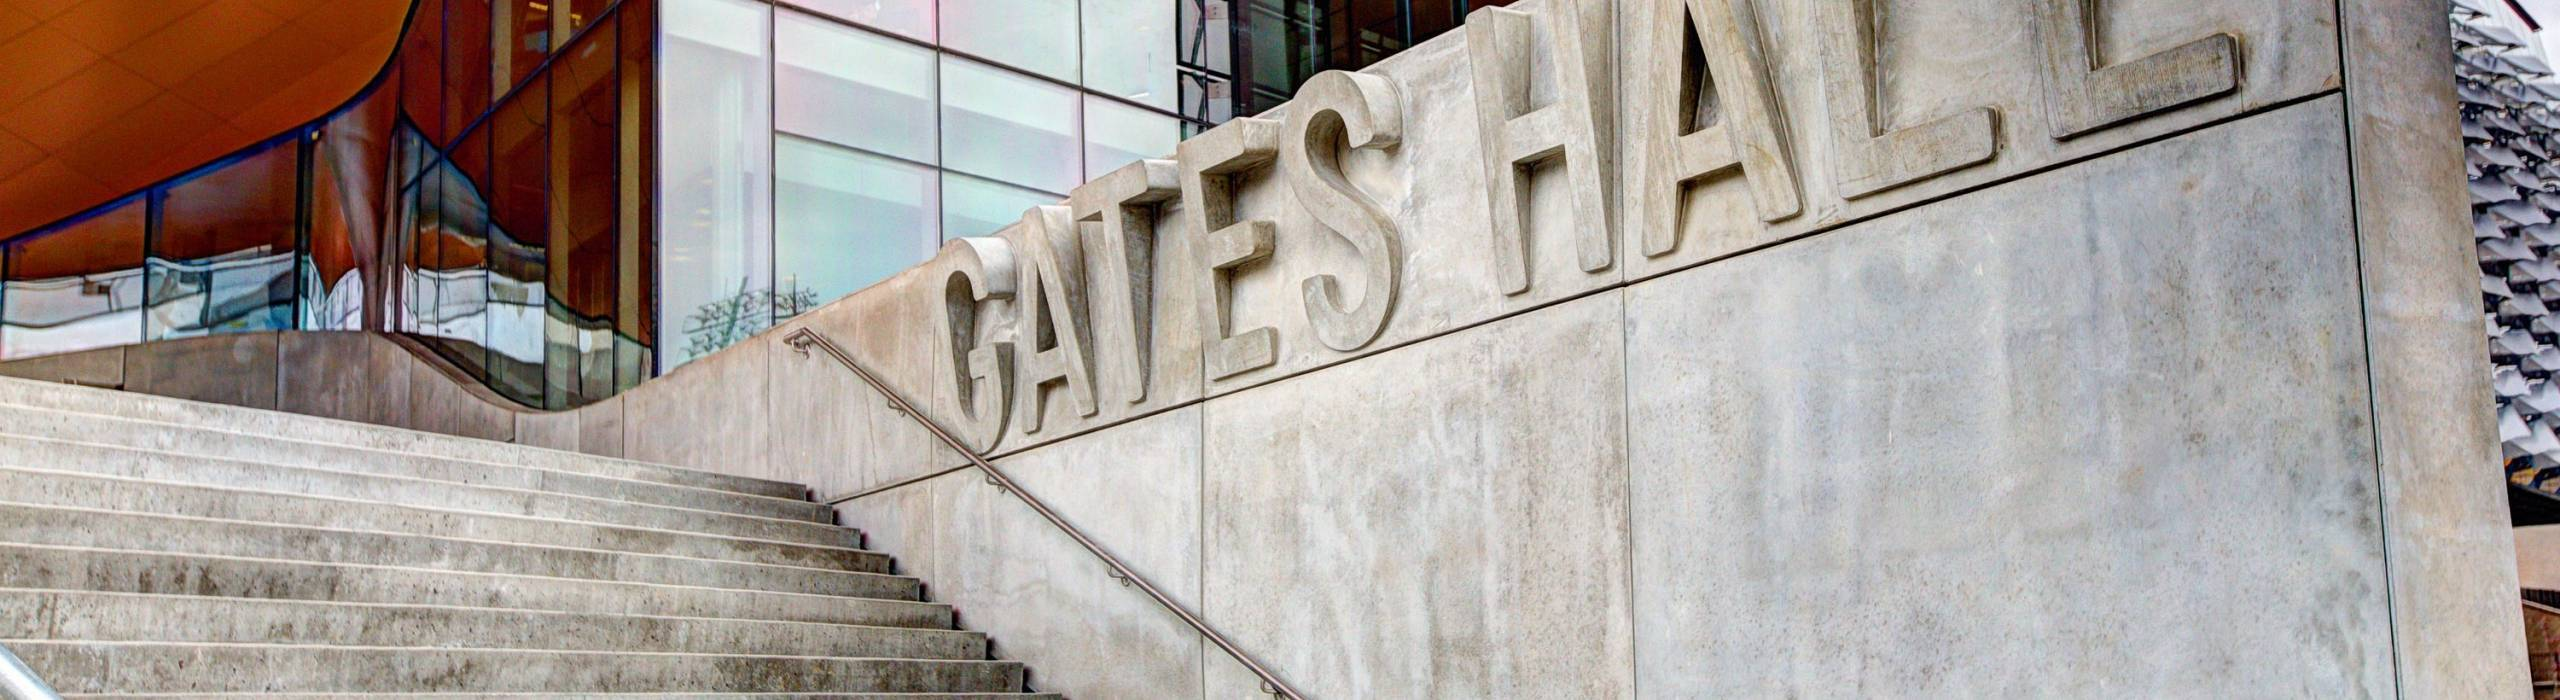 Gates Hall Banner Image